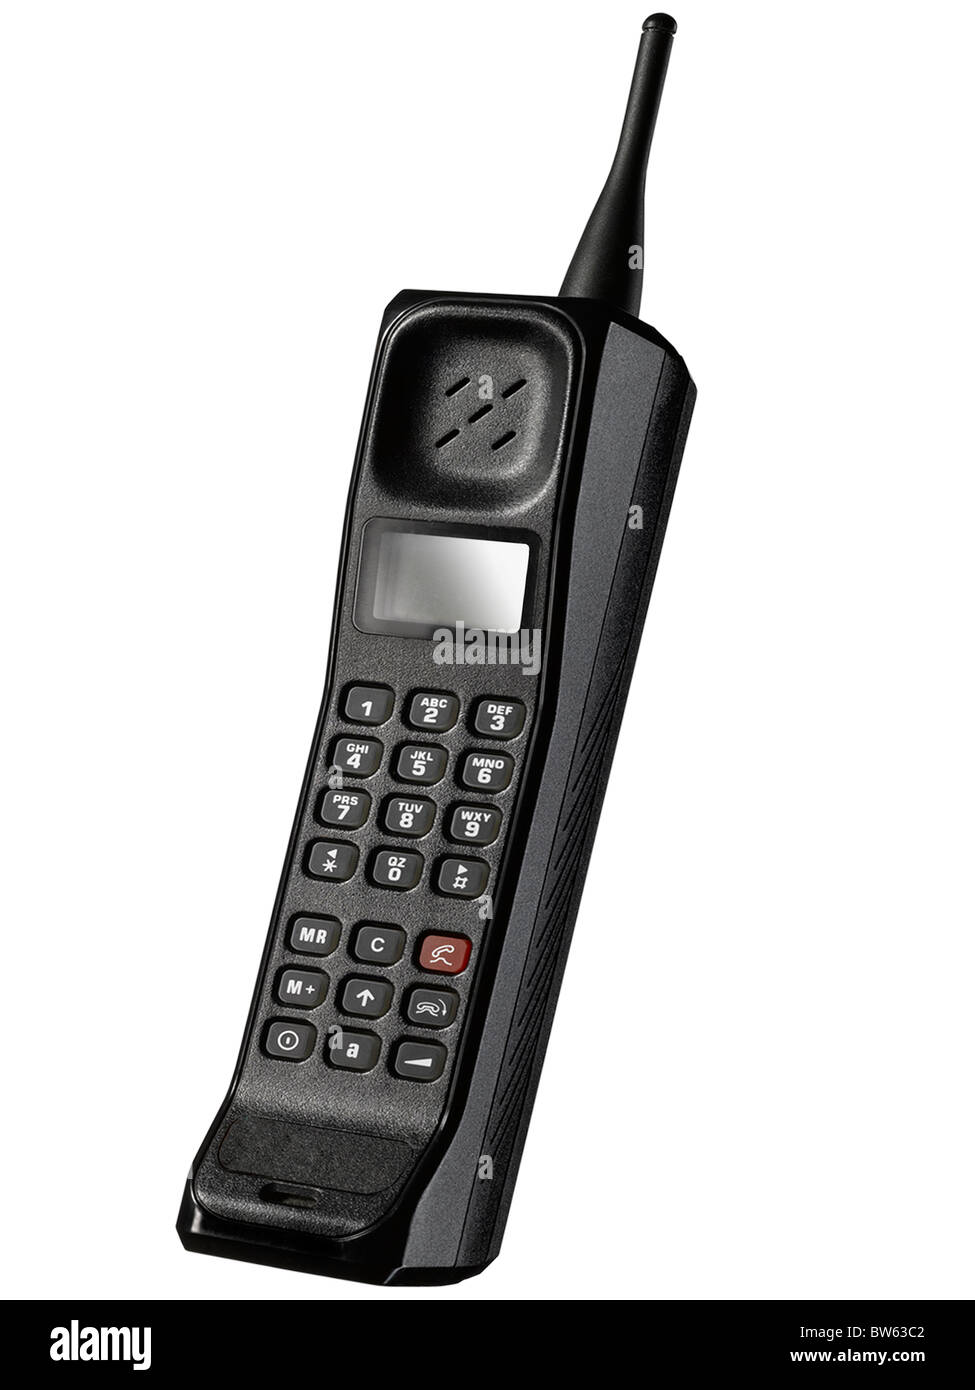 An old fashioned mobile phone - Stock Image